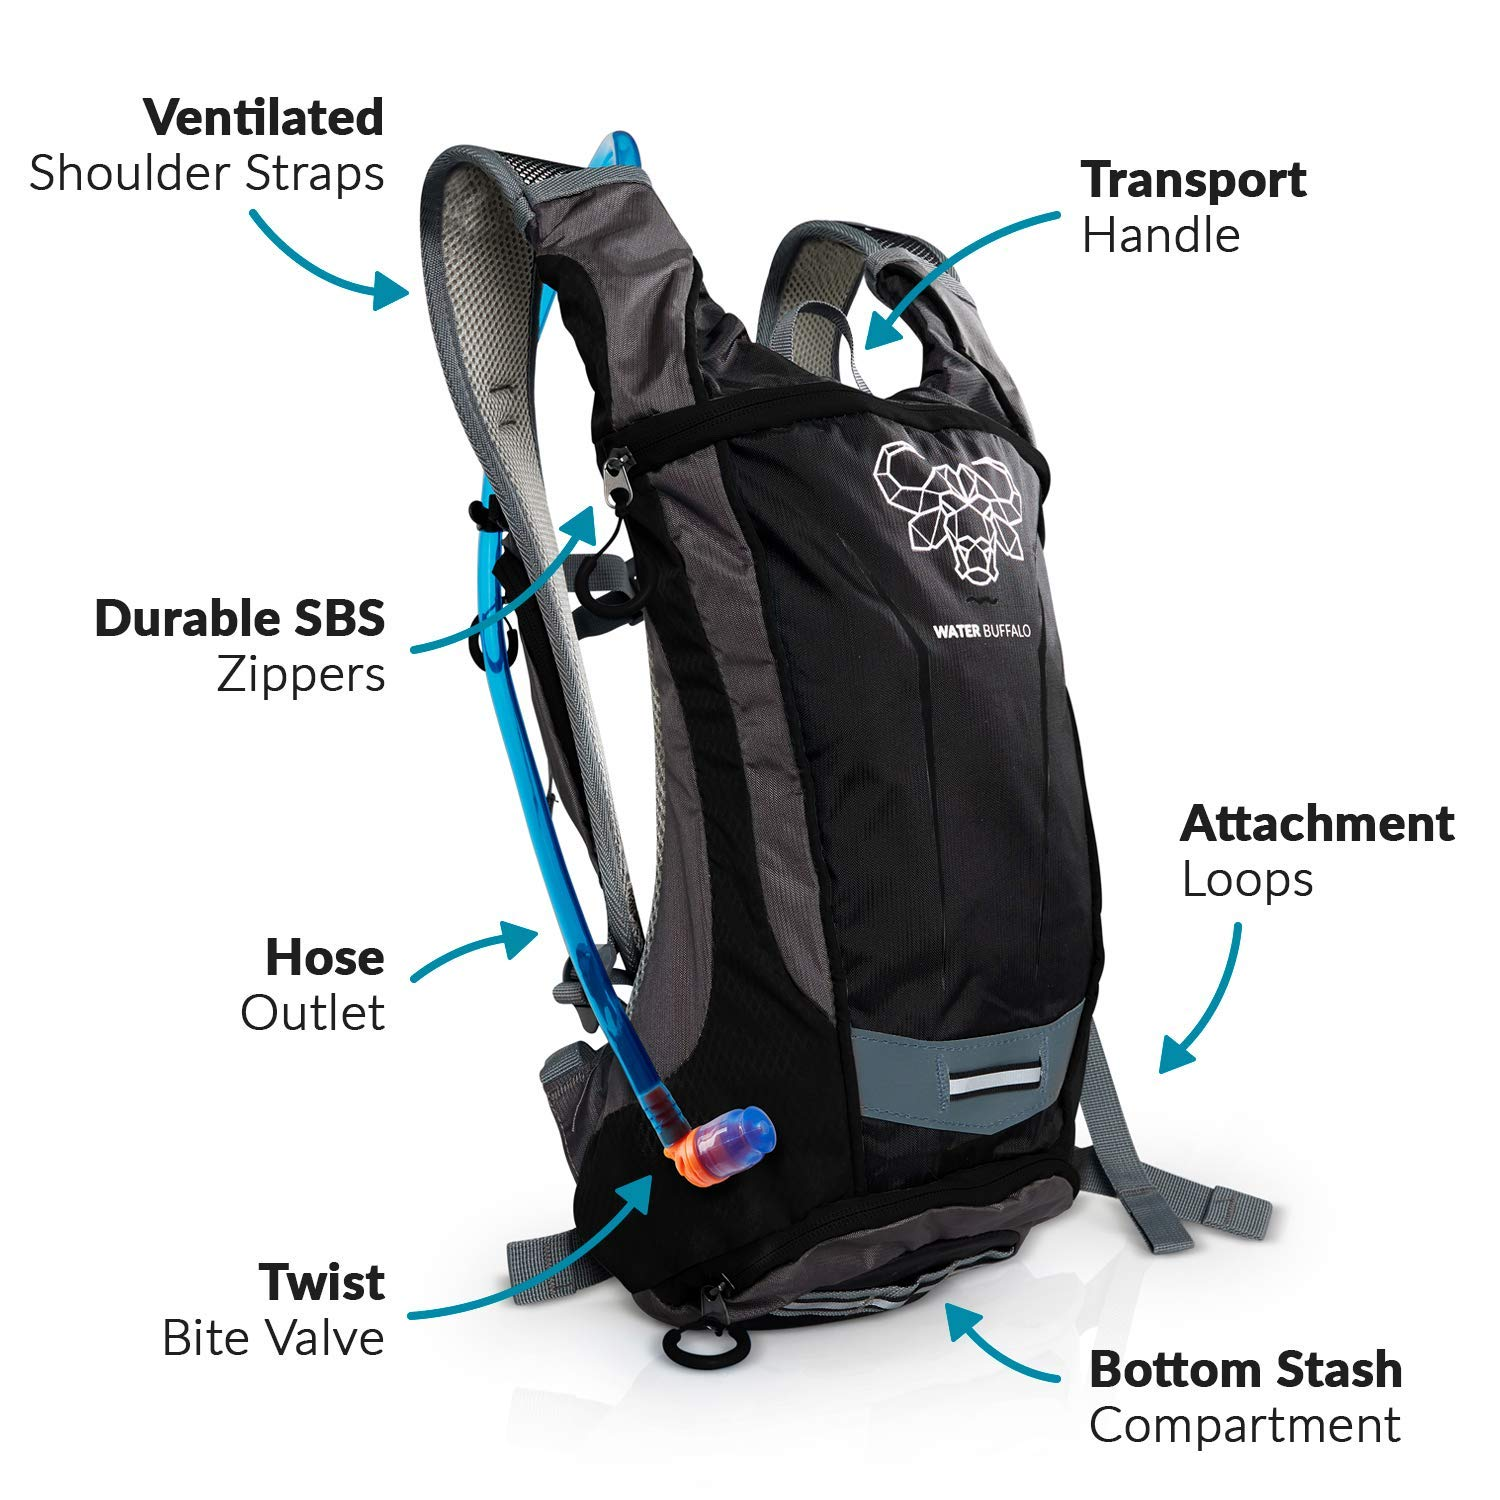 Amazon.com : Water Buffalo Hydration Backpack | Hydration Pack & 2 Liter BPA Free Bladder | Multiple Pockets For All Your Essentials : Sports & Outdoors